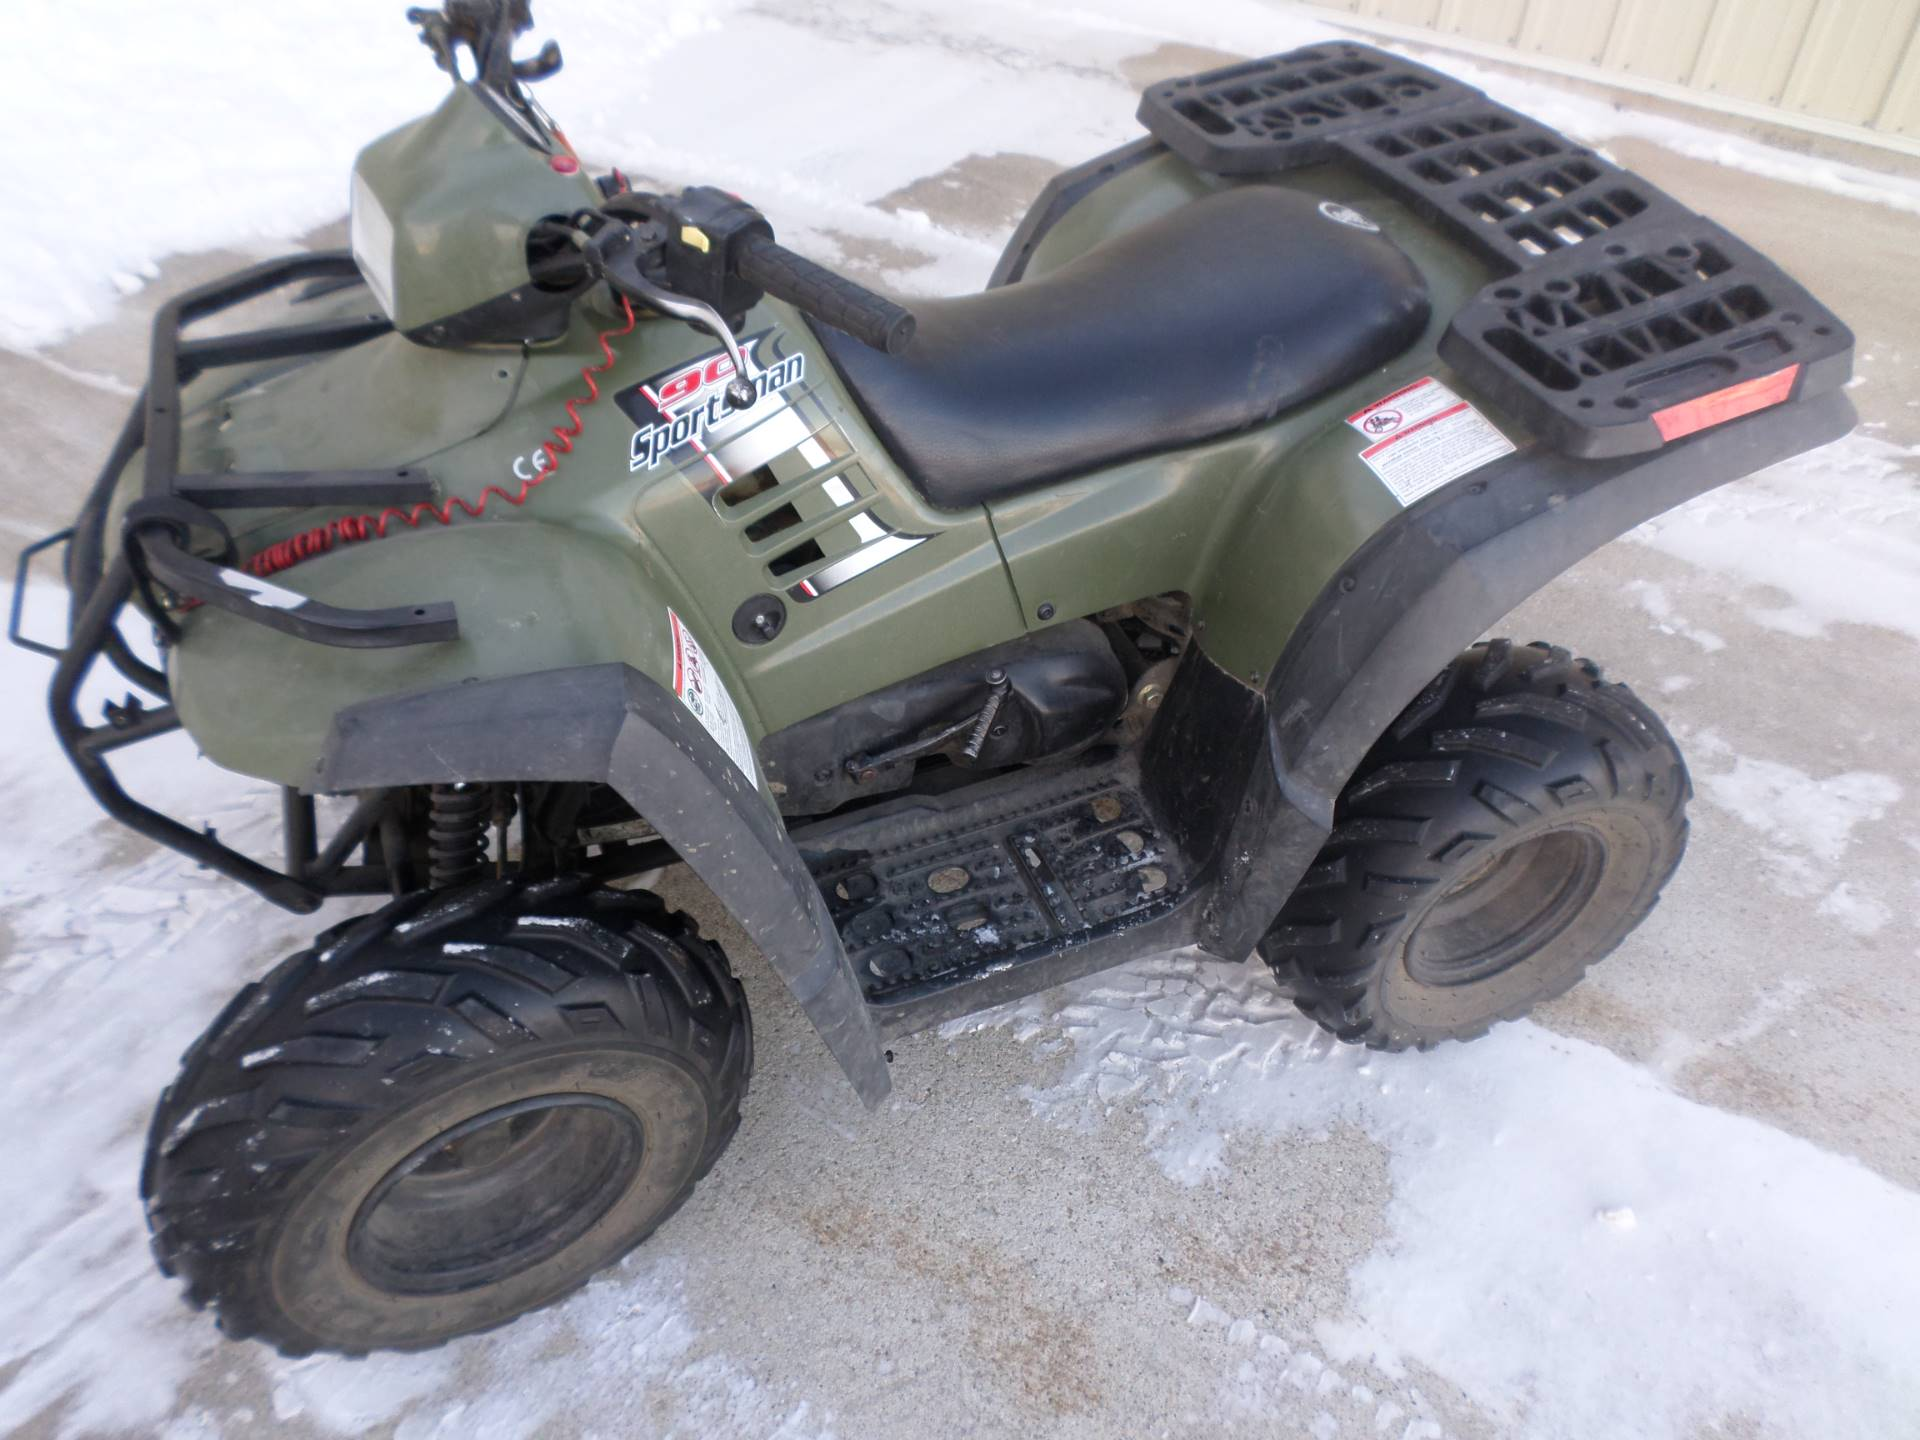 2004 Polaris Sportsman 90 for sale 4644